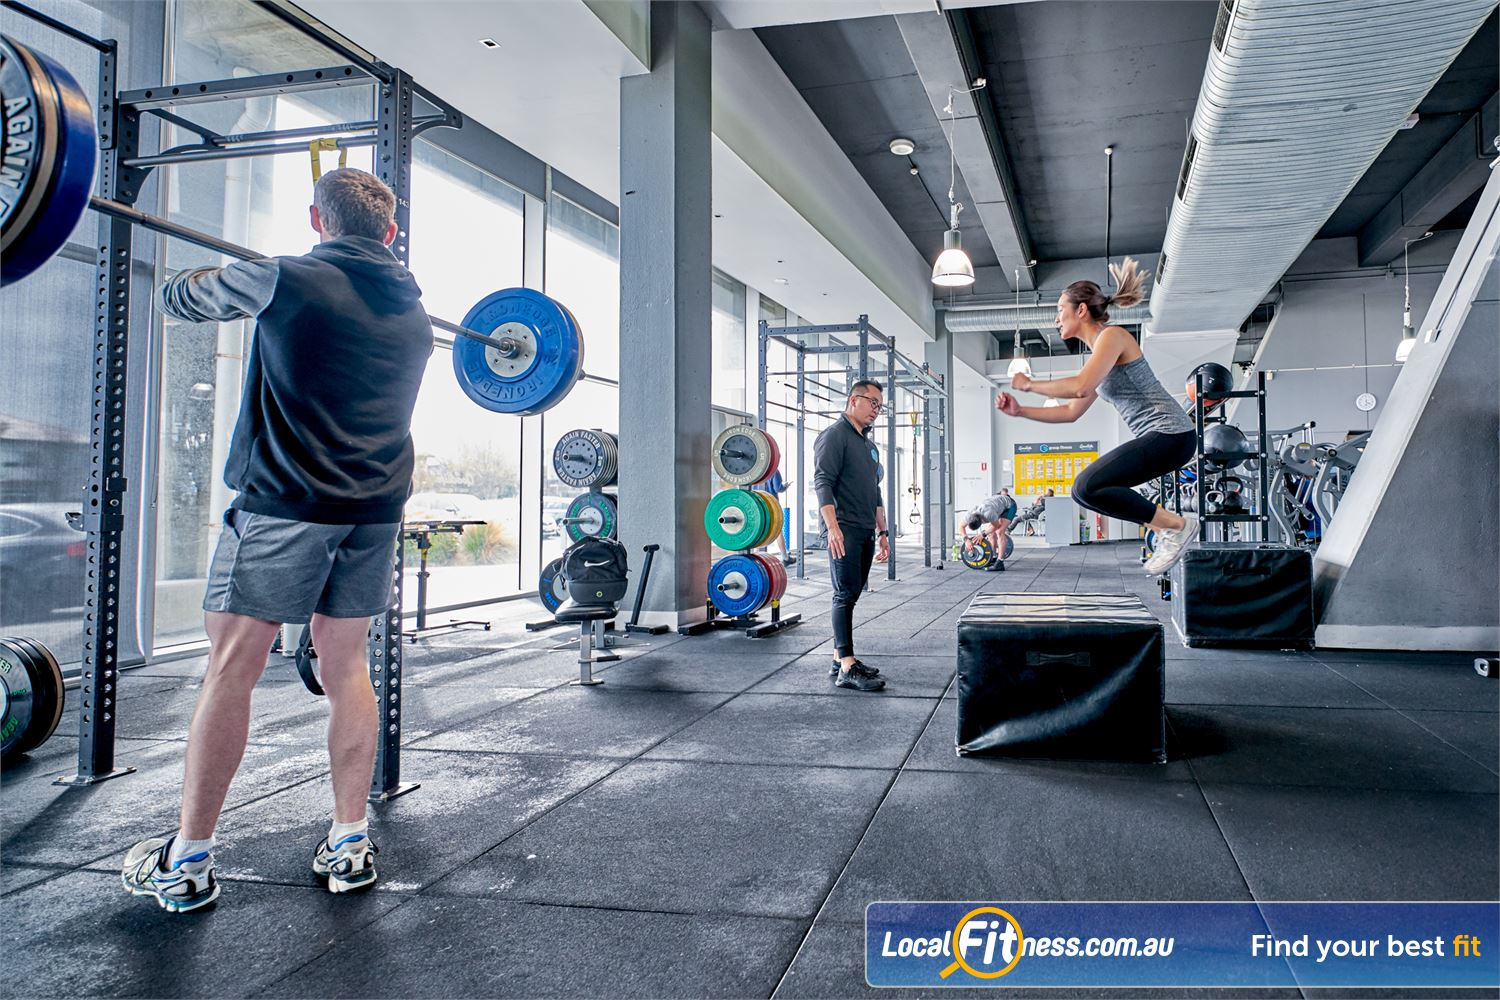 Goodlife Health Clubs Waverley Park Mulgrave Strength Matrix perfect for squats, deadlifts, bench pressing and more.